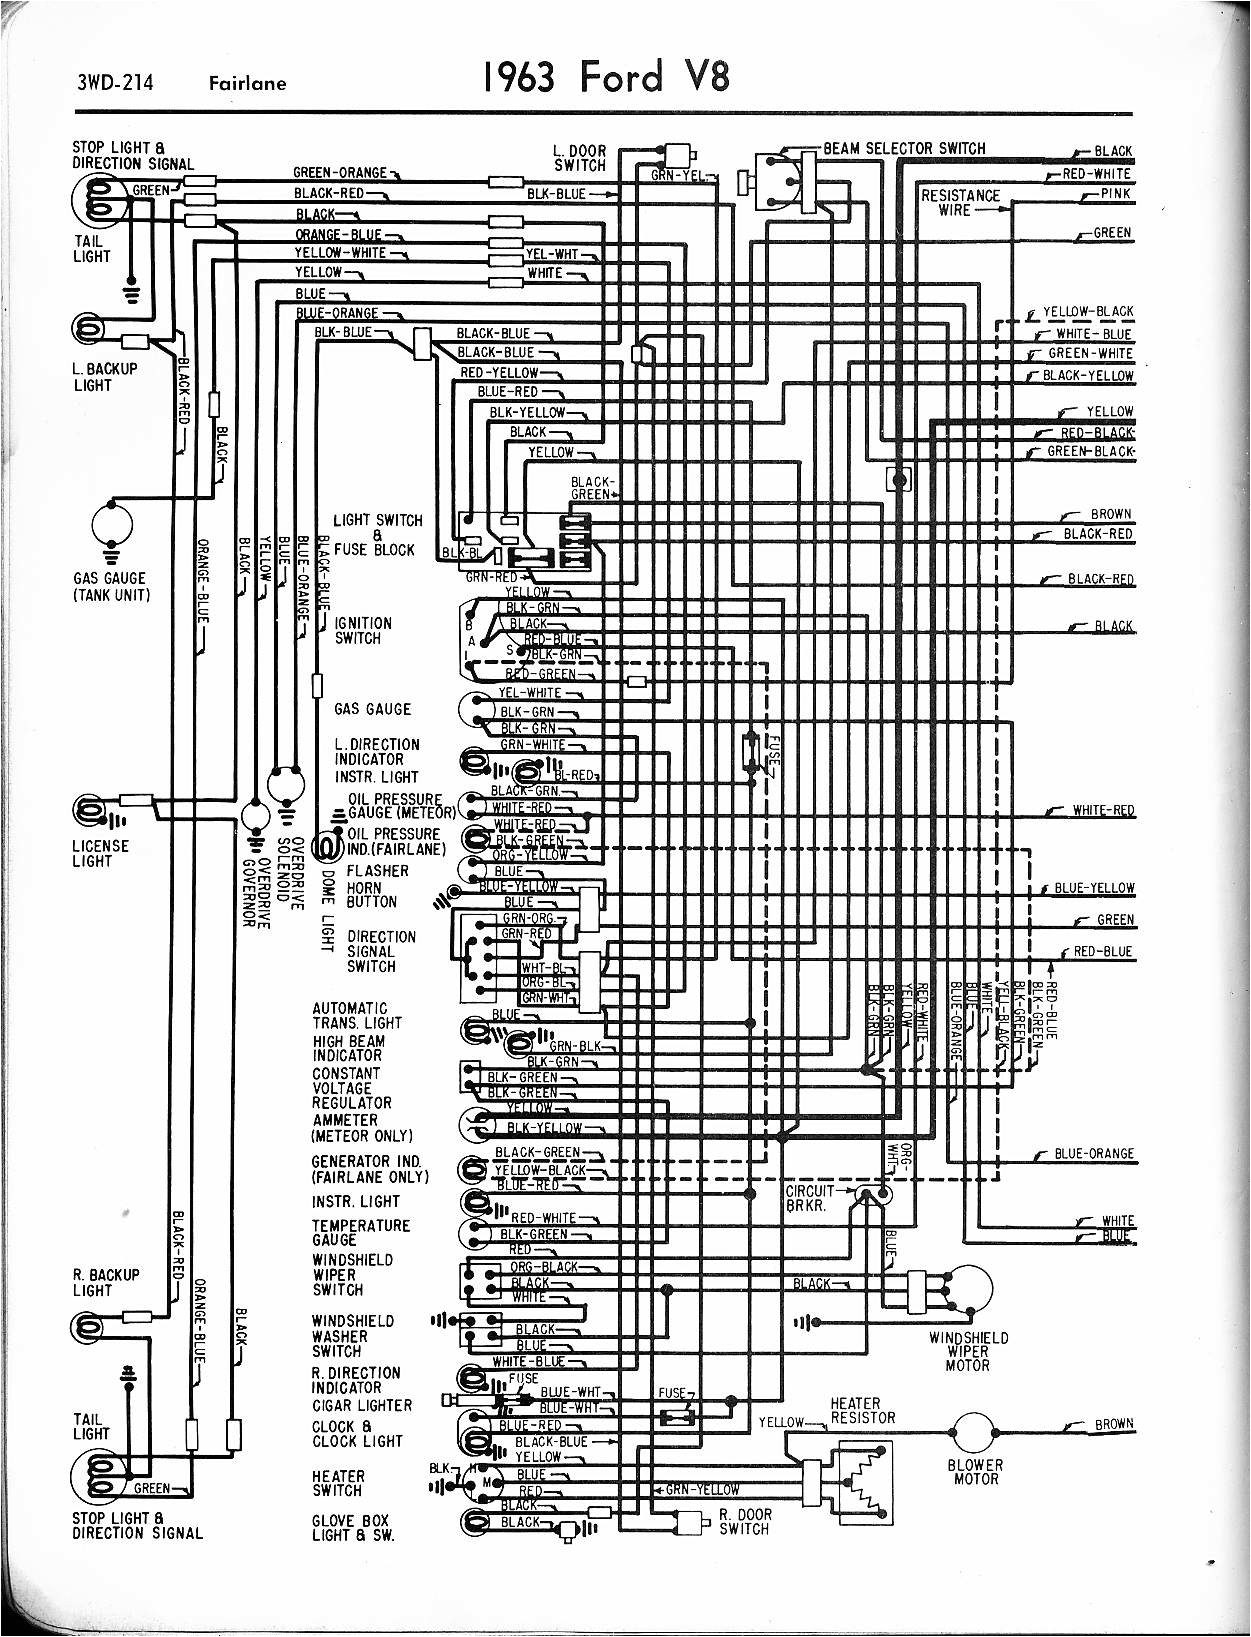 1966 ford Fairlane Wiring Diagram 1966 Fairlane Wiring Diagram Poli Fuse6 Klictravel Nl